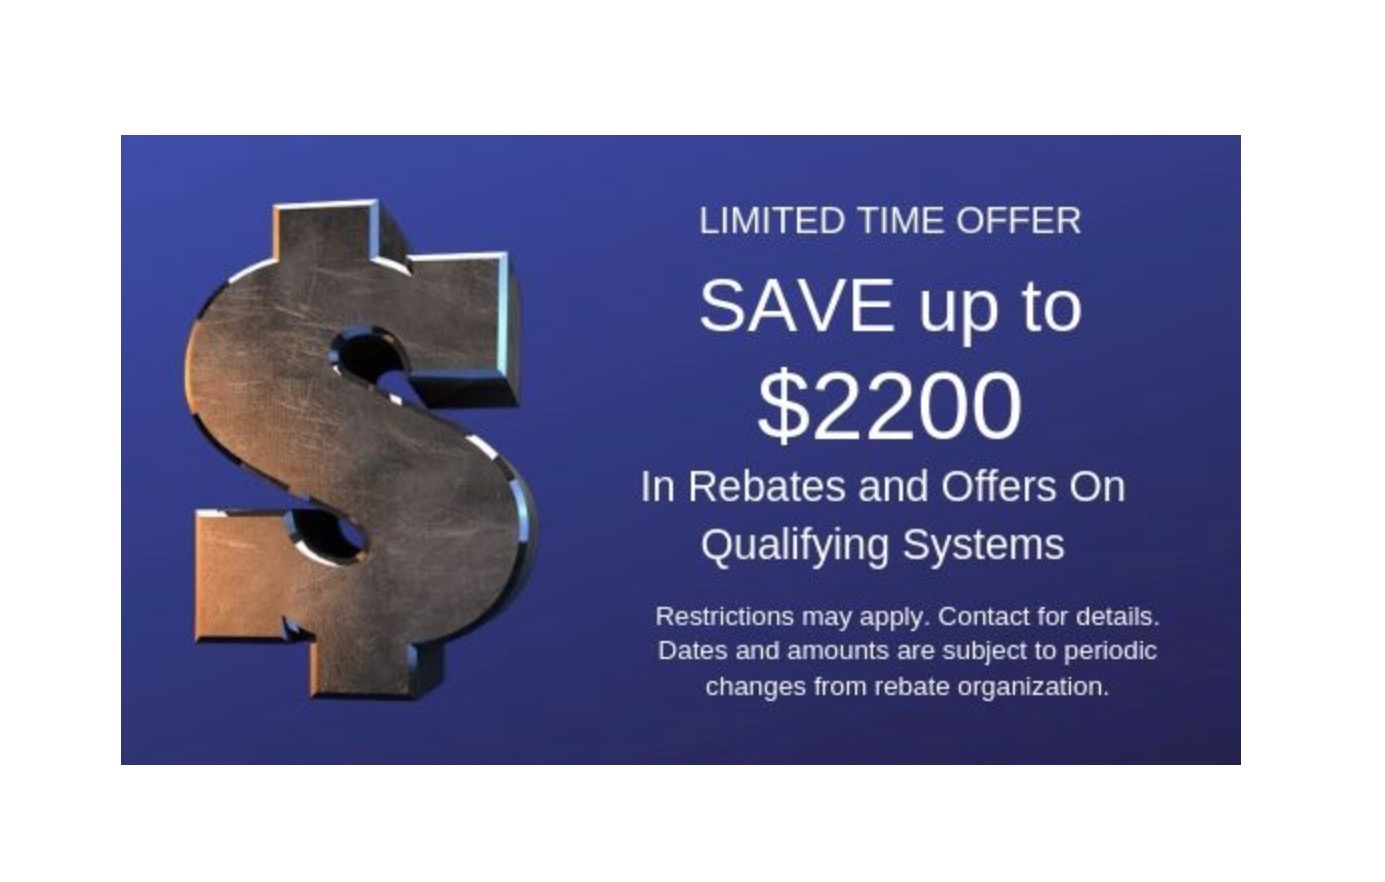 Save up to $2200 in rebates and offers on qualifying systems with K & J Heating and Cooling